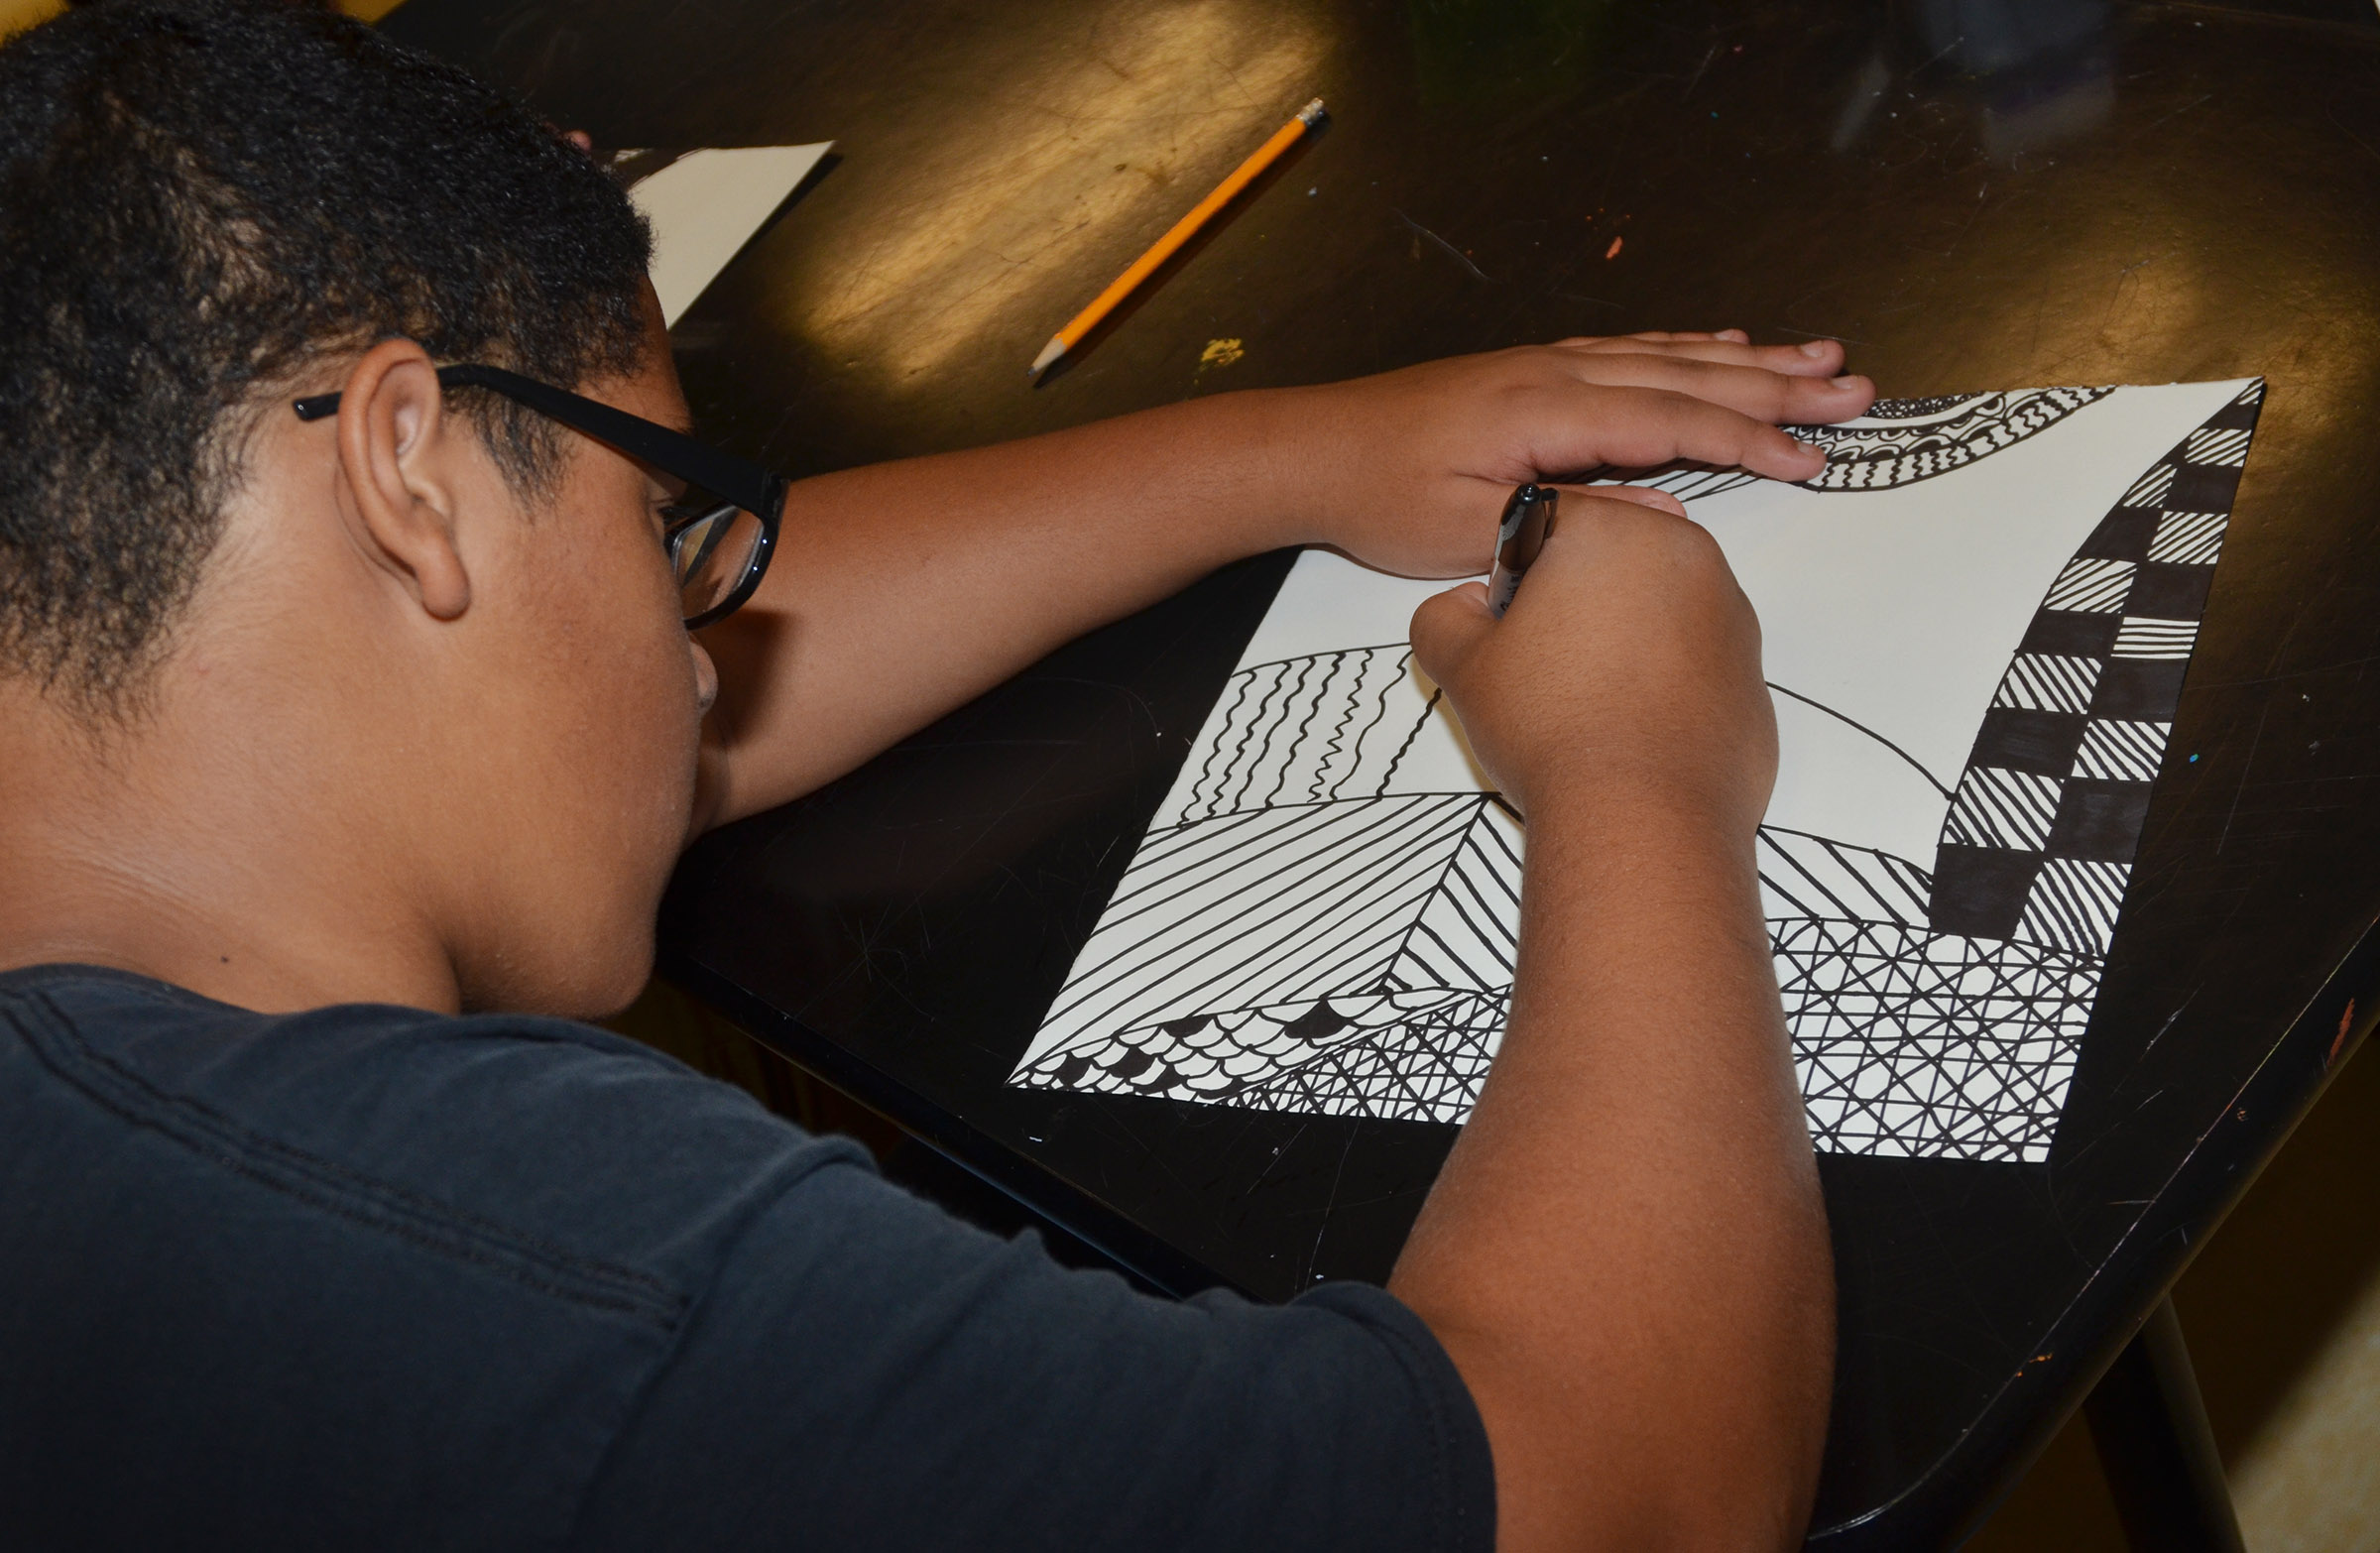 CHS freshman Tyreece Washington works on his zentangle design.